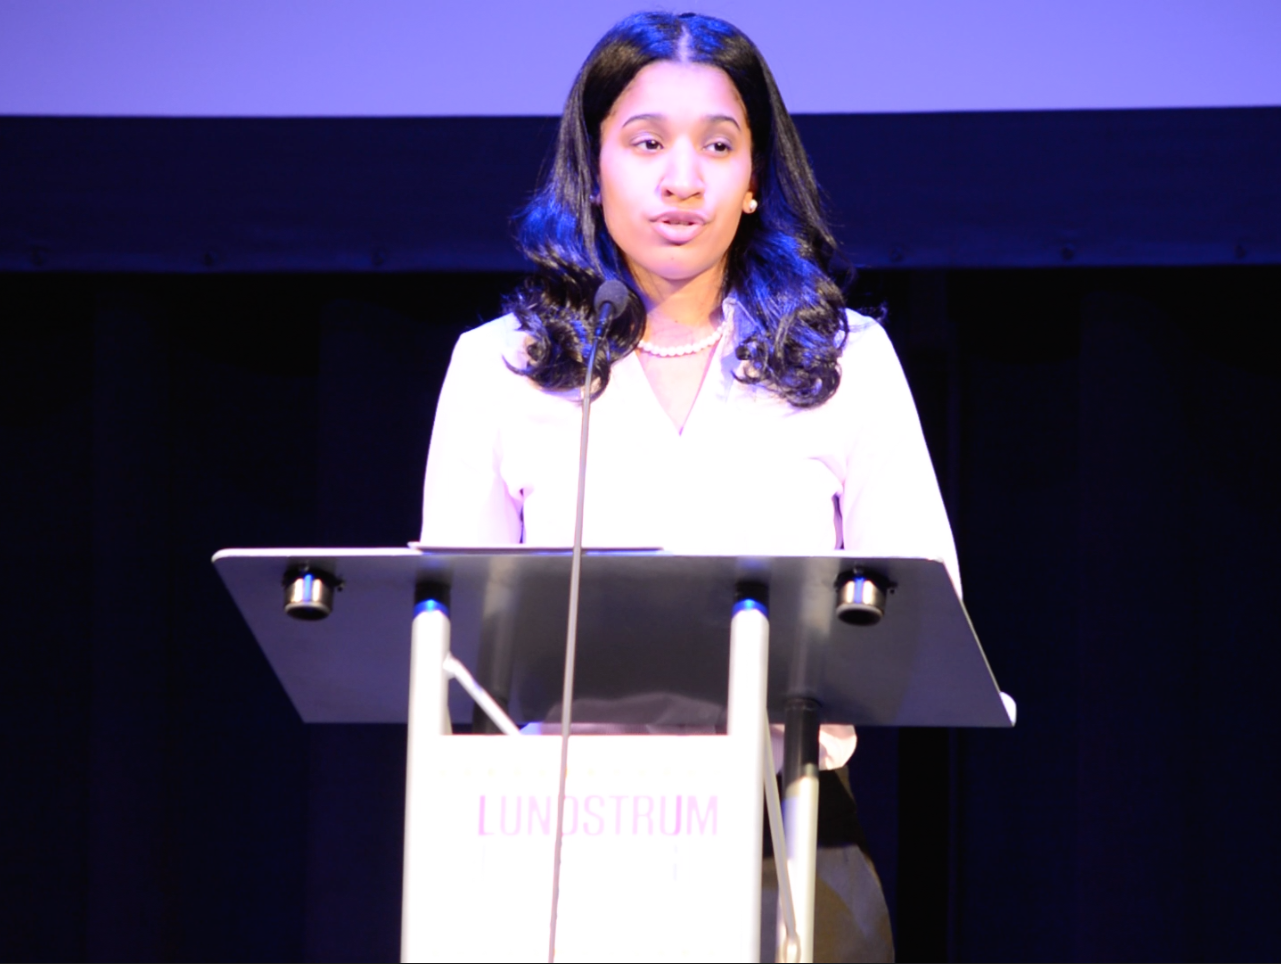 At the 2017 Inspiring Dreams Breakfast, Ashley Brown shared how dance built her confidence and helped her pursue her dream of a career in criminal justice.